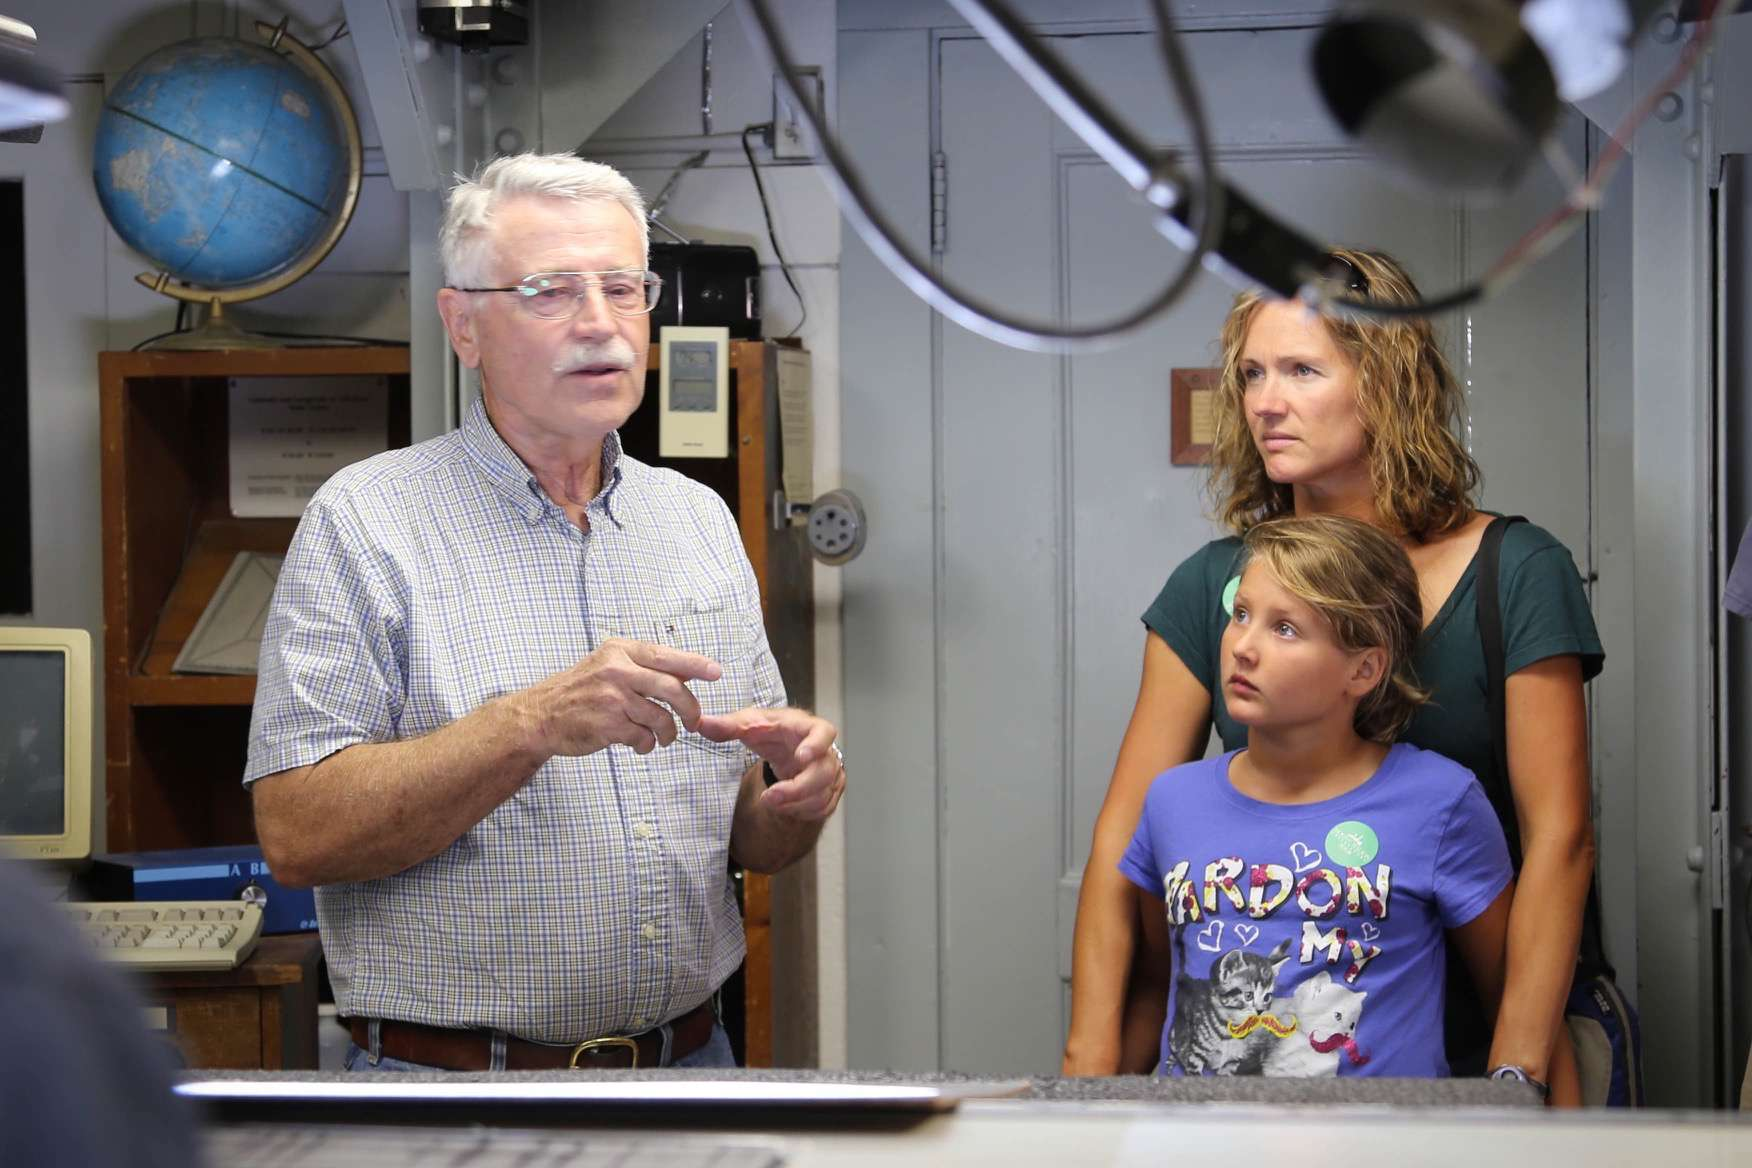 A young girl and her mother listen attentively as one of the observatory staff members explains how things work.